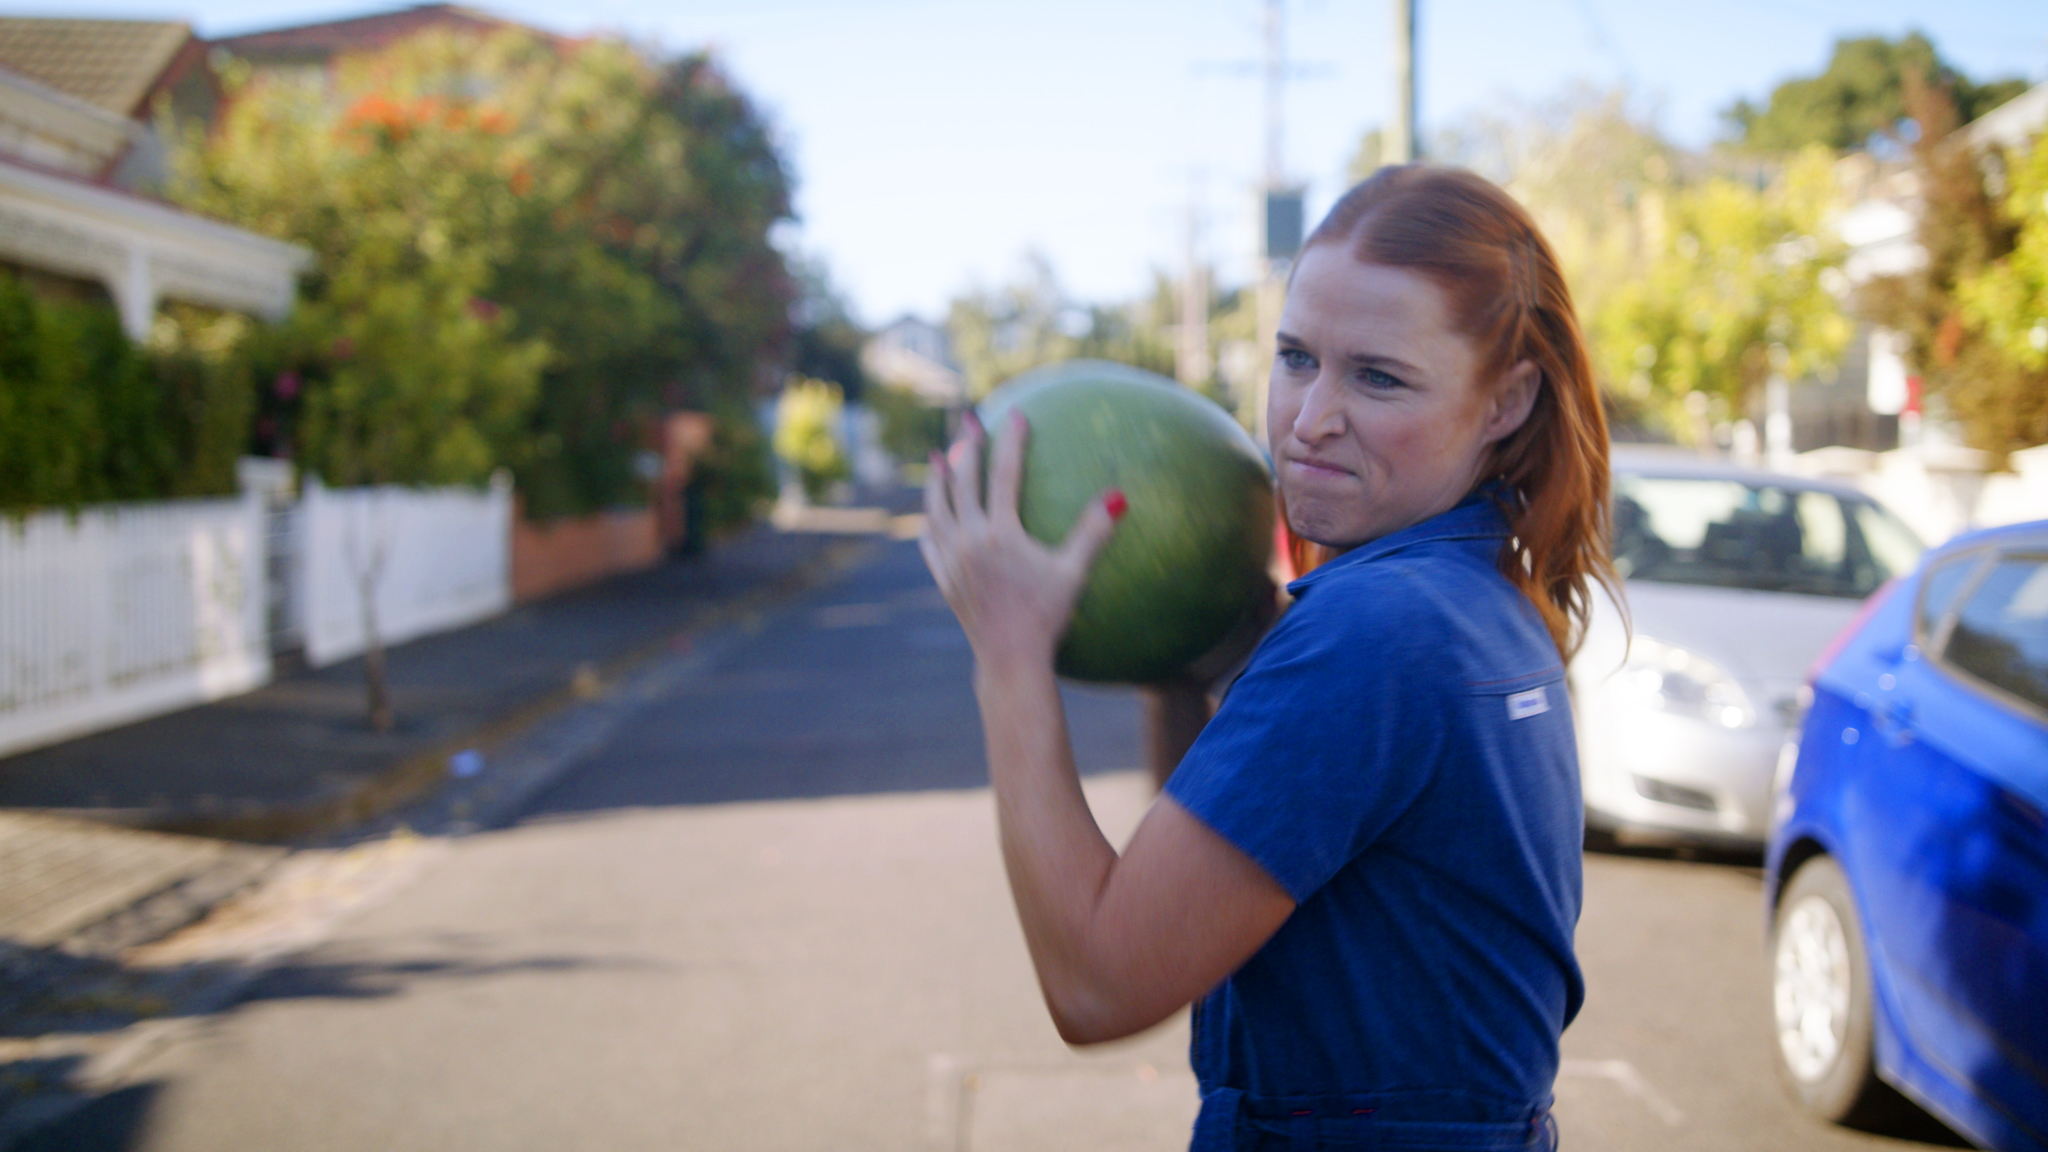 realestate.com.au launches new 'How to Home Loan' online video campaign with Jess Harris